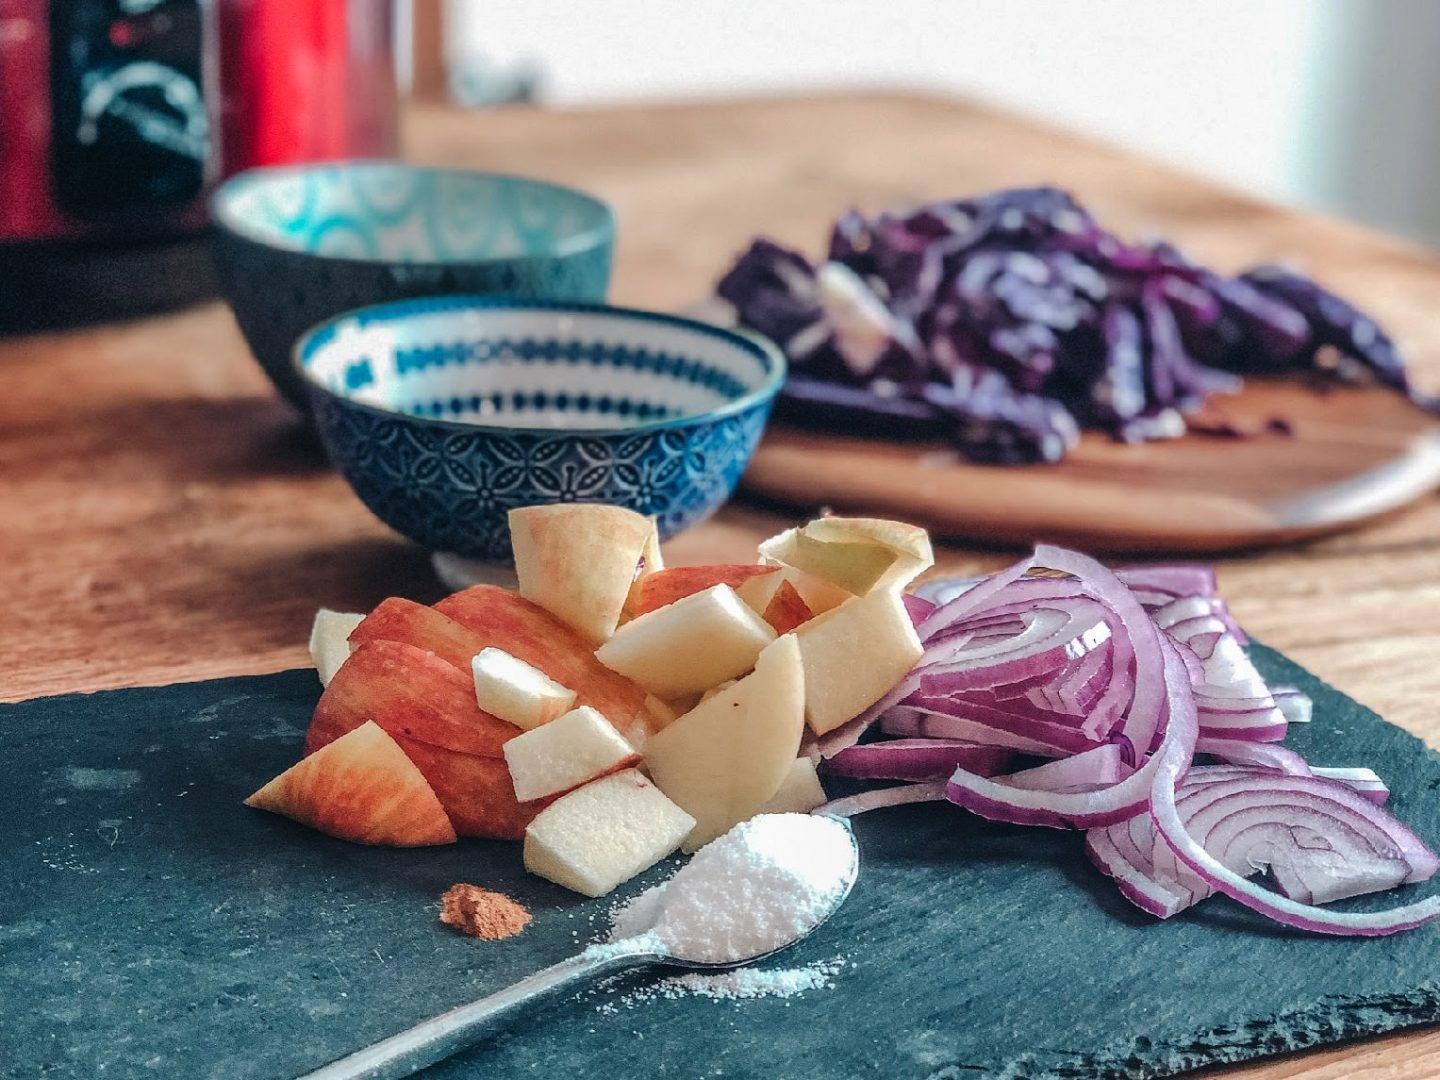 Recipes for red cabbage, what do you need to make slow cooker red cabbage for roast dinner